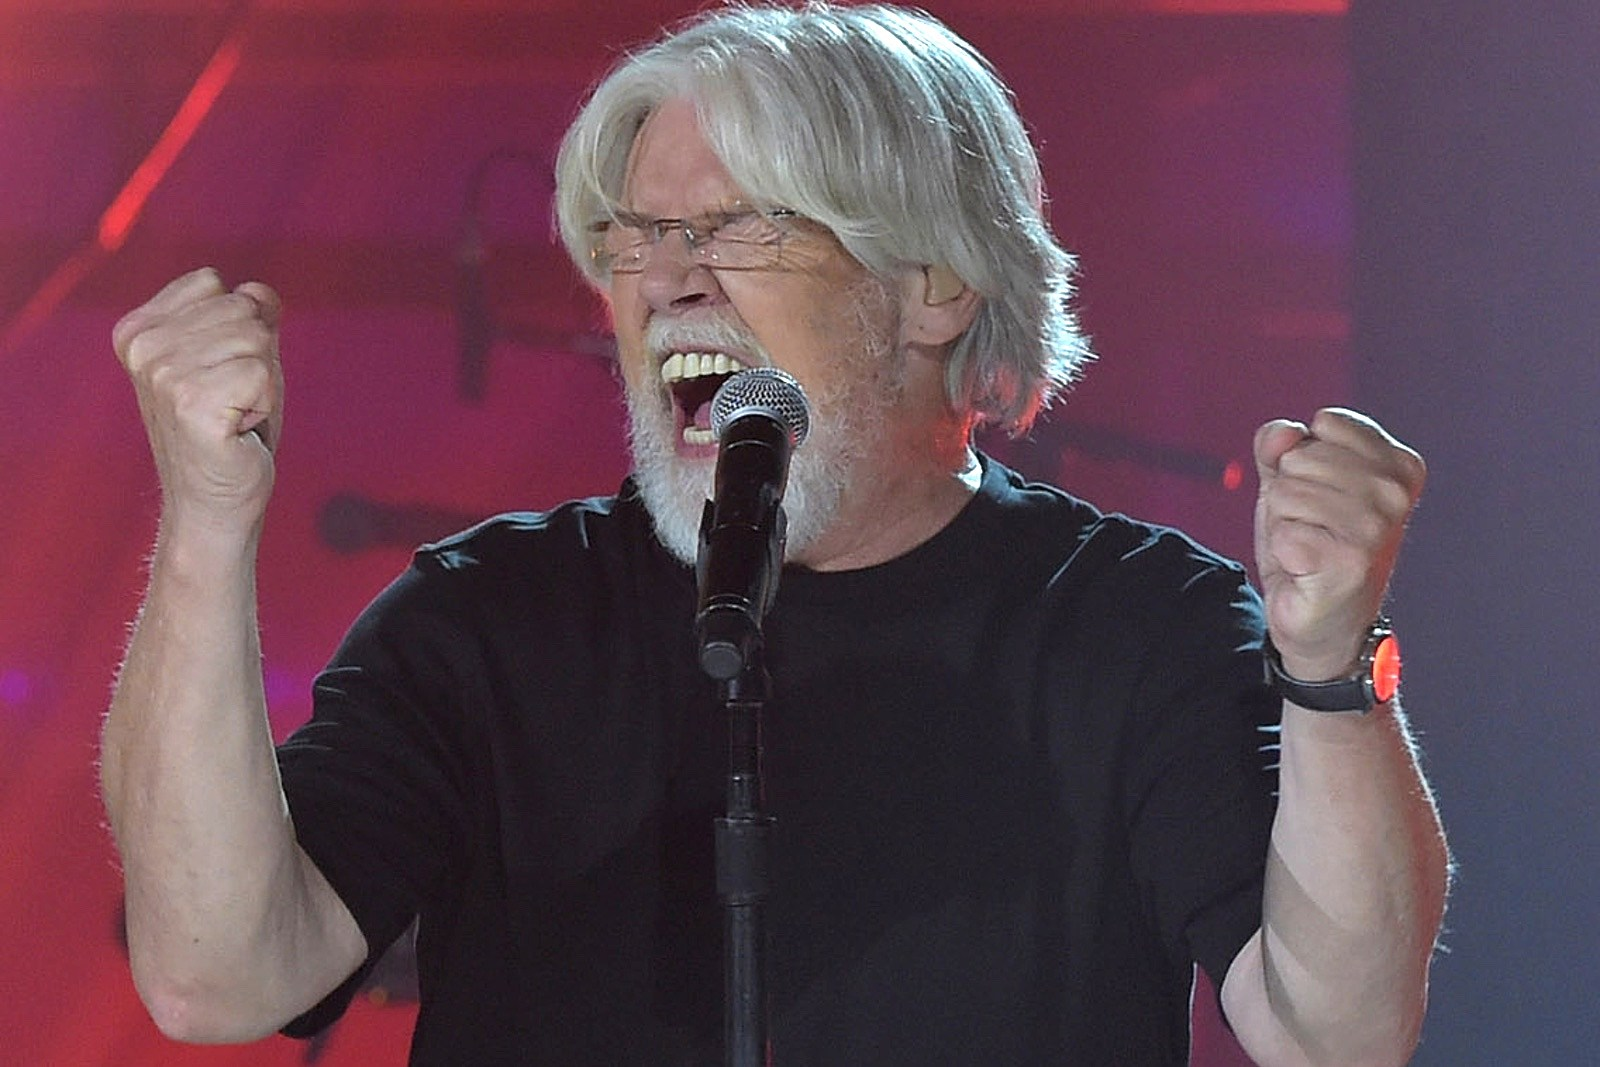 Bob Seger's Postponed Tour Will Resume This Fall